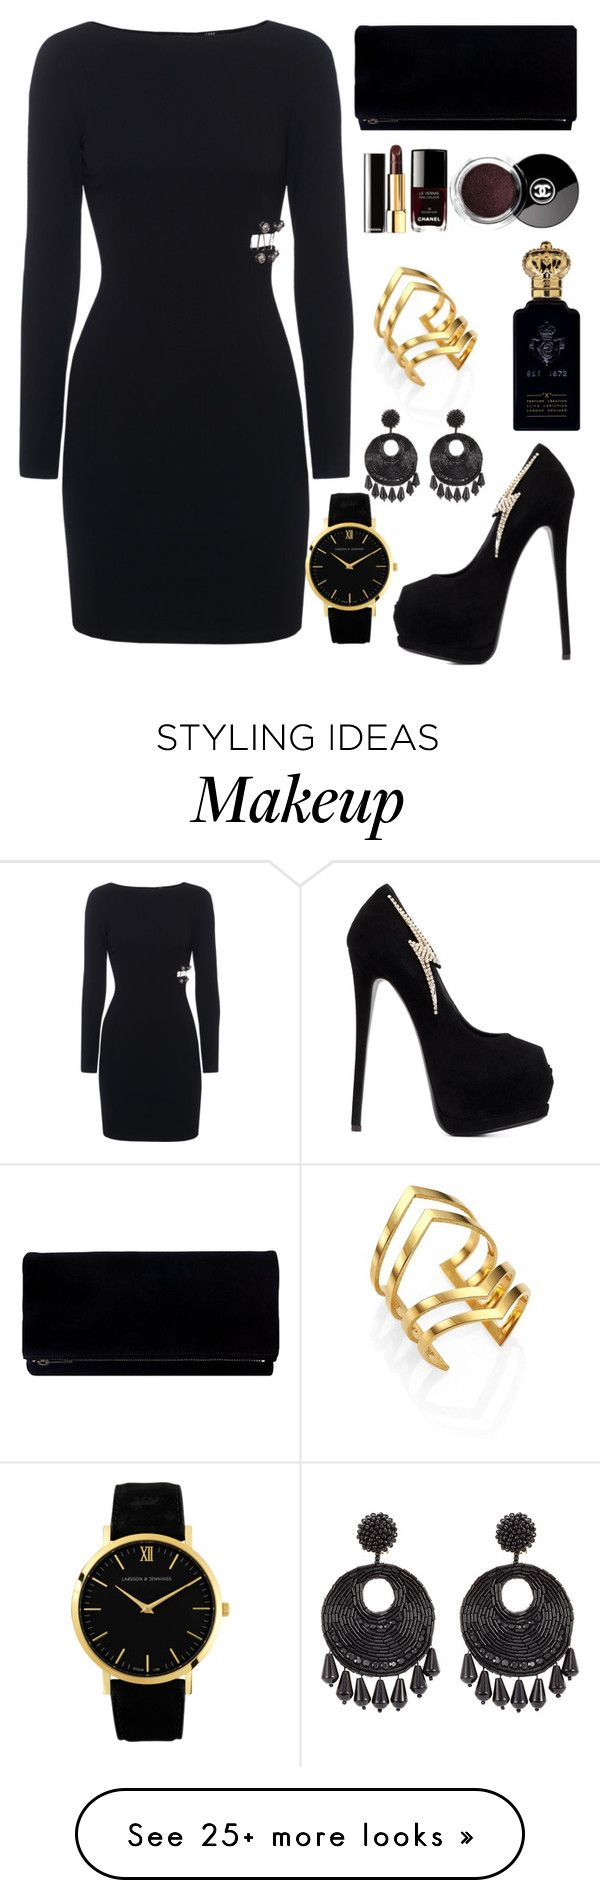 """Club Ze "" by amimareelynn on Polyvore featuring Giuseppe Zanotti, Clive Christian, Larsson & Jennings, Jennifer Zeuner and Kenneth Jay Lane"